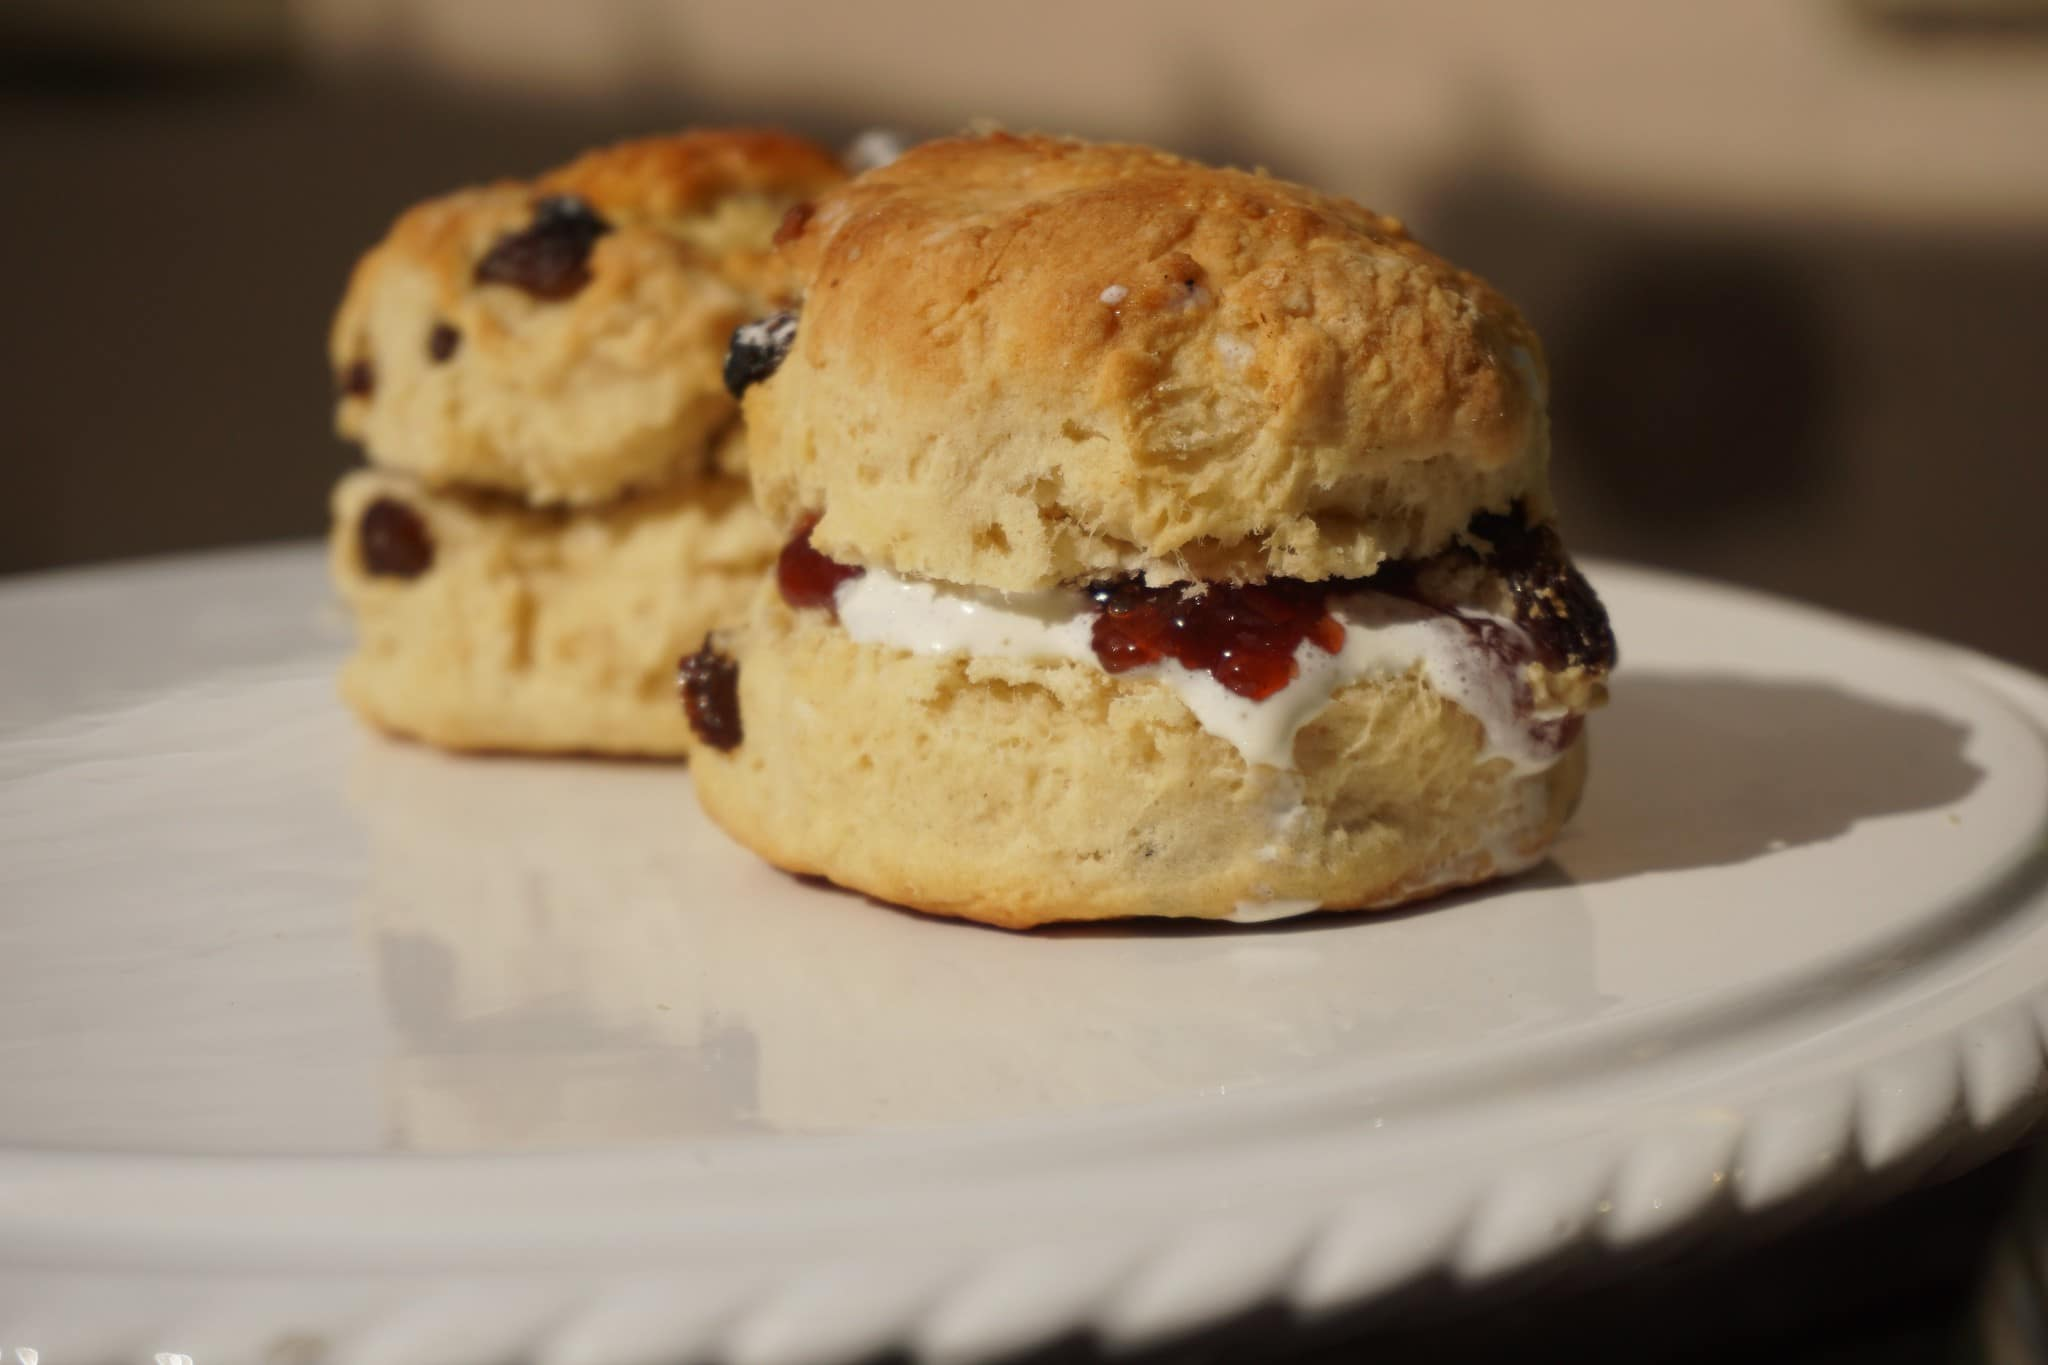 Fruit scones with clotted cream and jam on a plate.